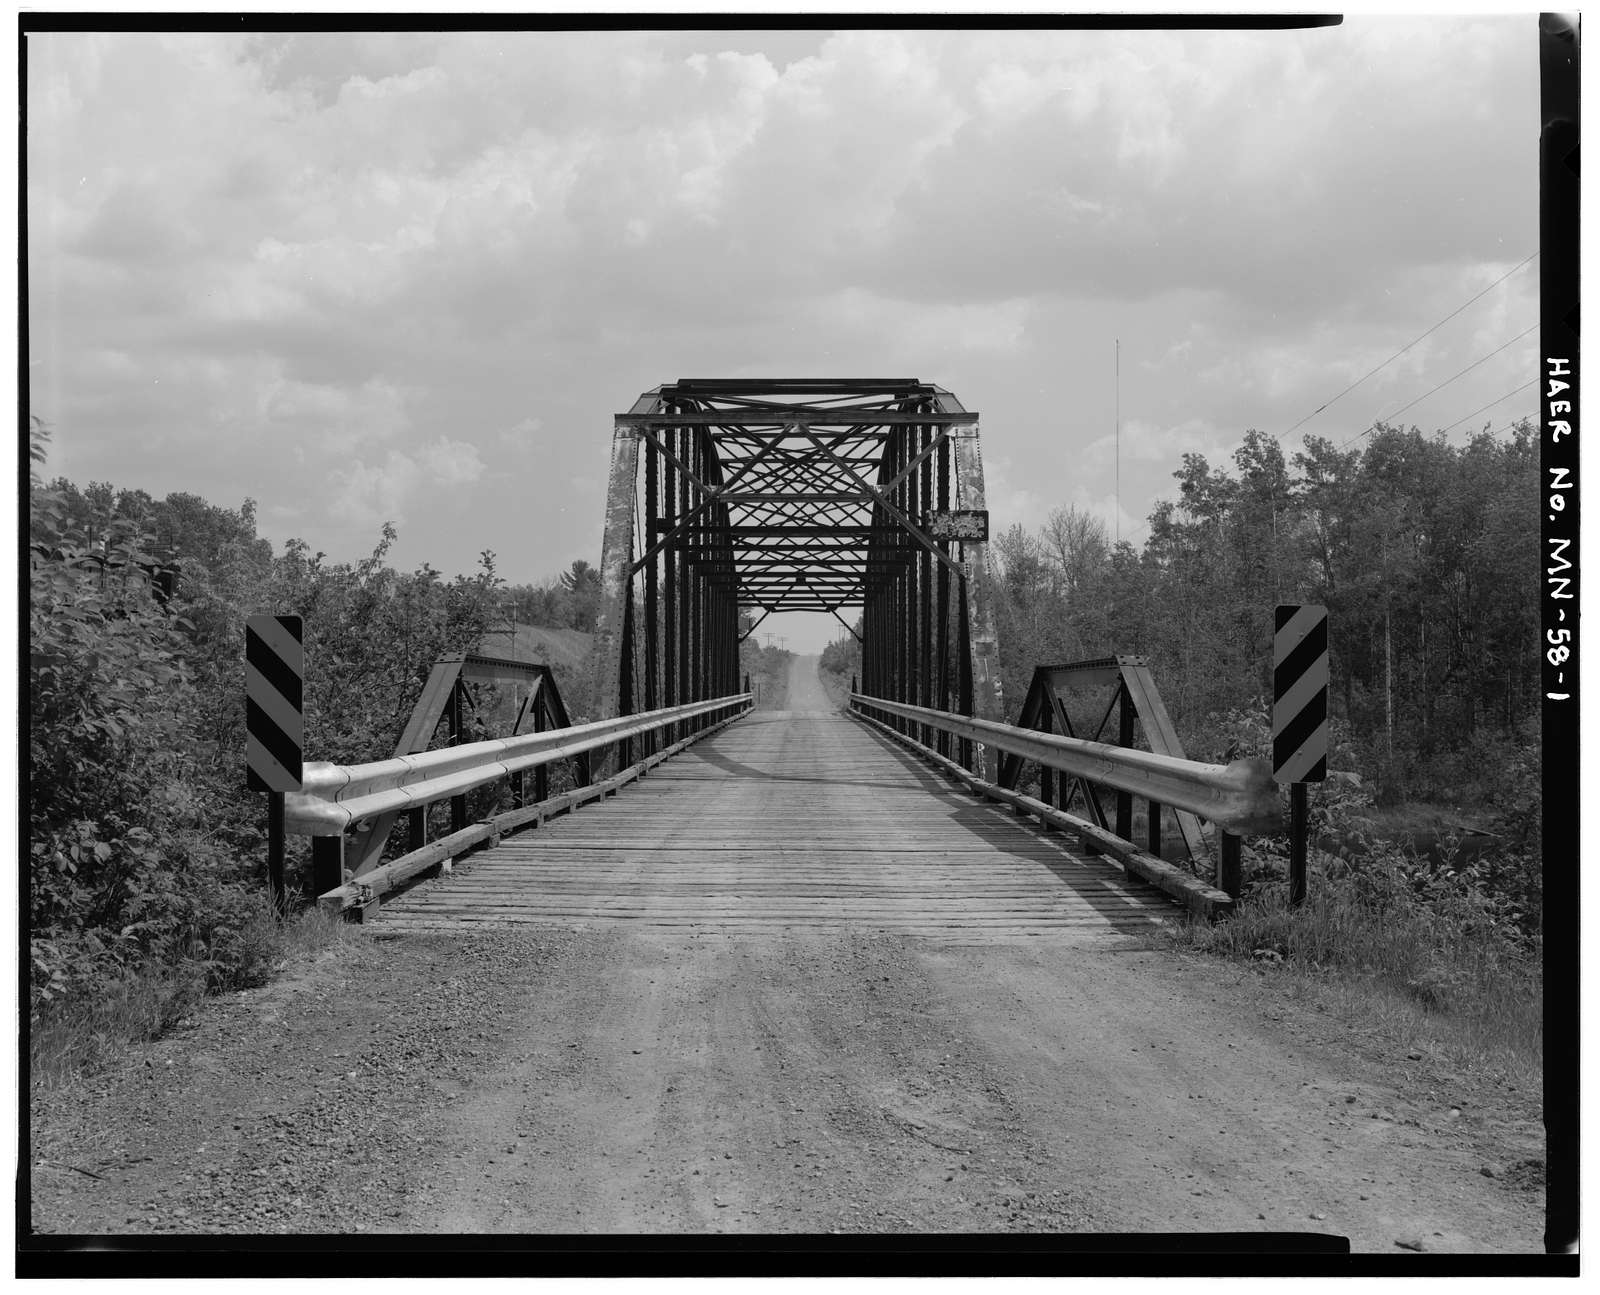 Brosseau Road Bridge, County Road 694 spanning Cloquet at River, Burnett, St. Louis County, MN